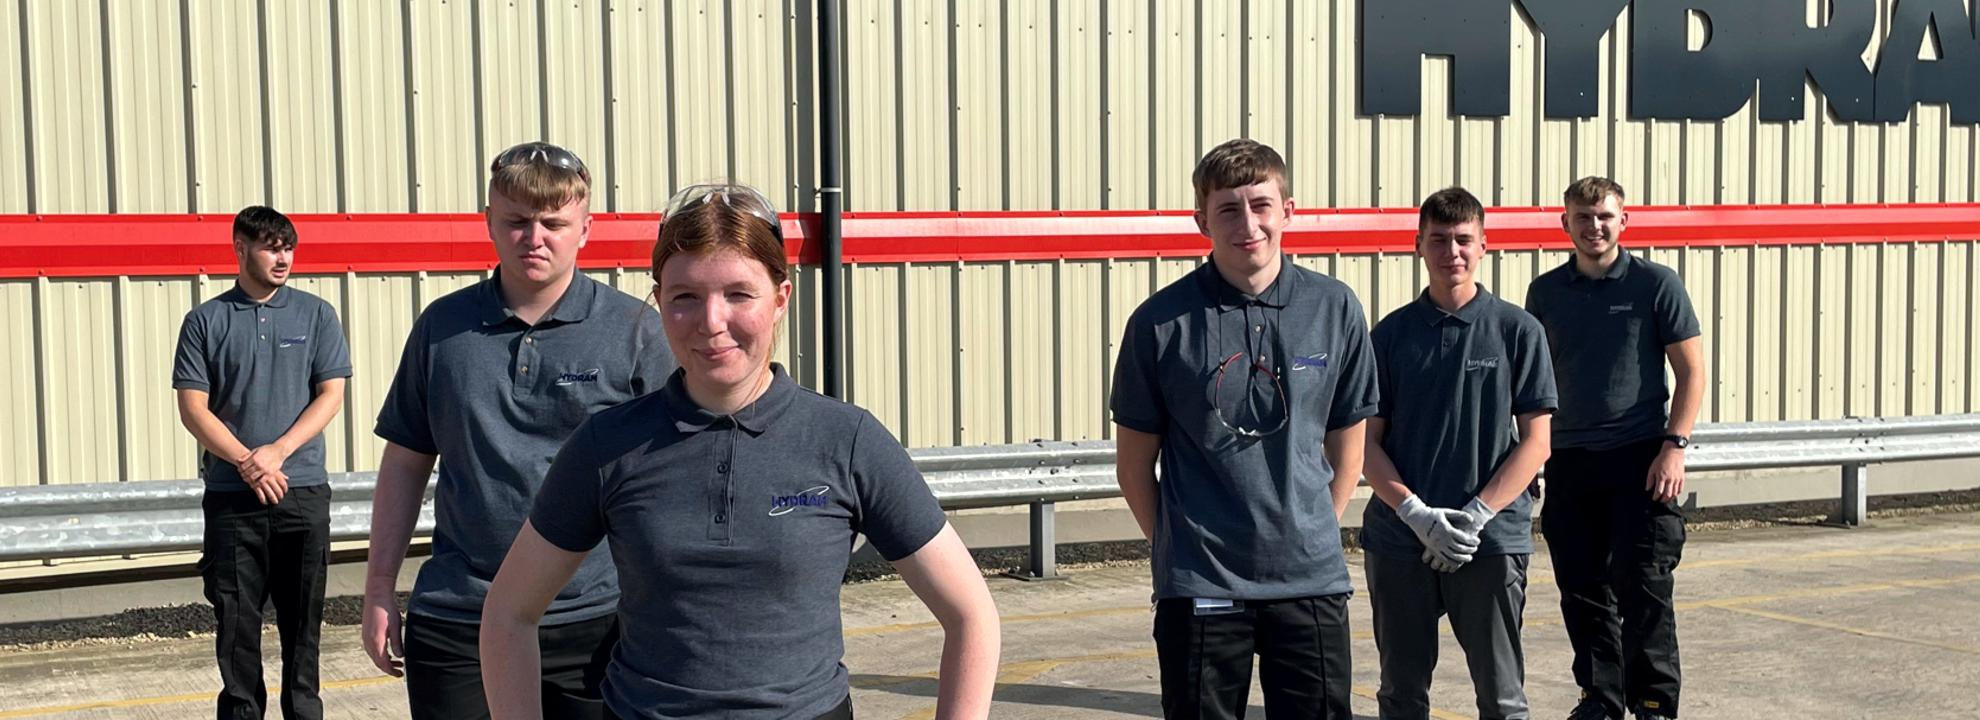 2021 new apprentices at Hydram